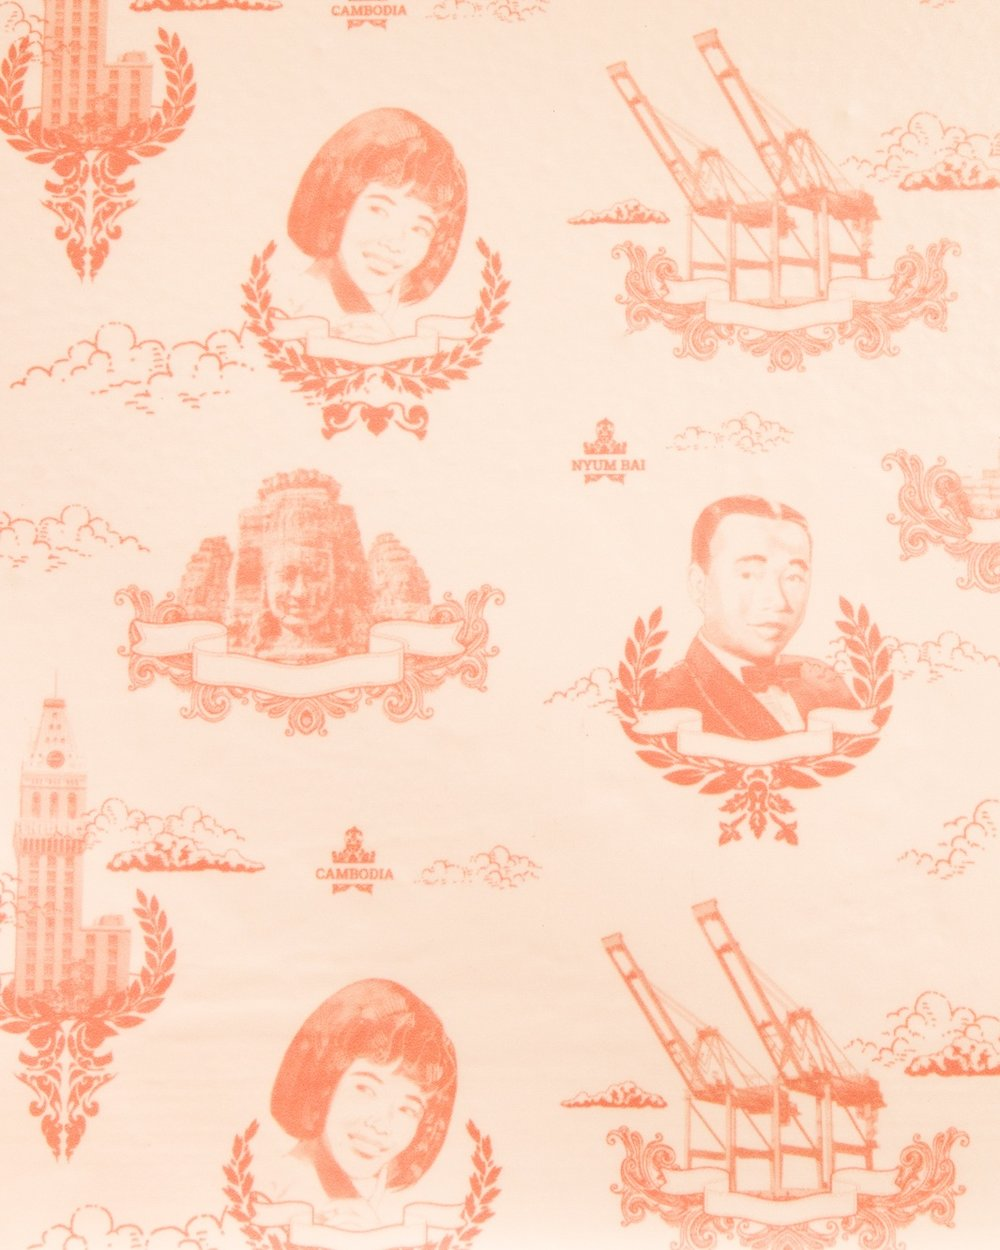 Photo of Nyum Bai vintage tock n' roll wallpaper by Patricia Chang